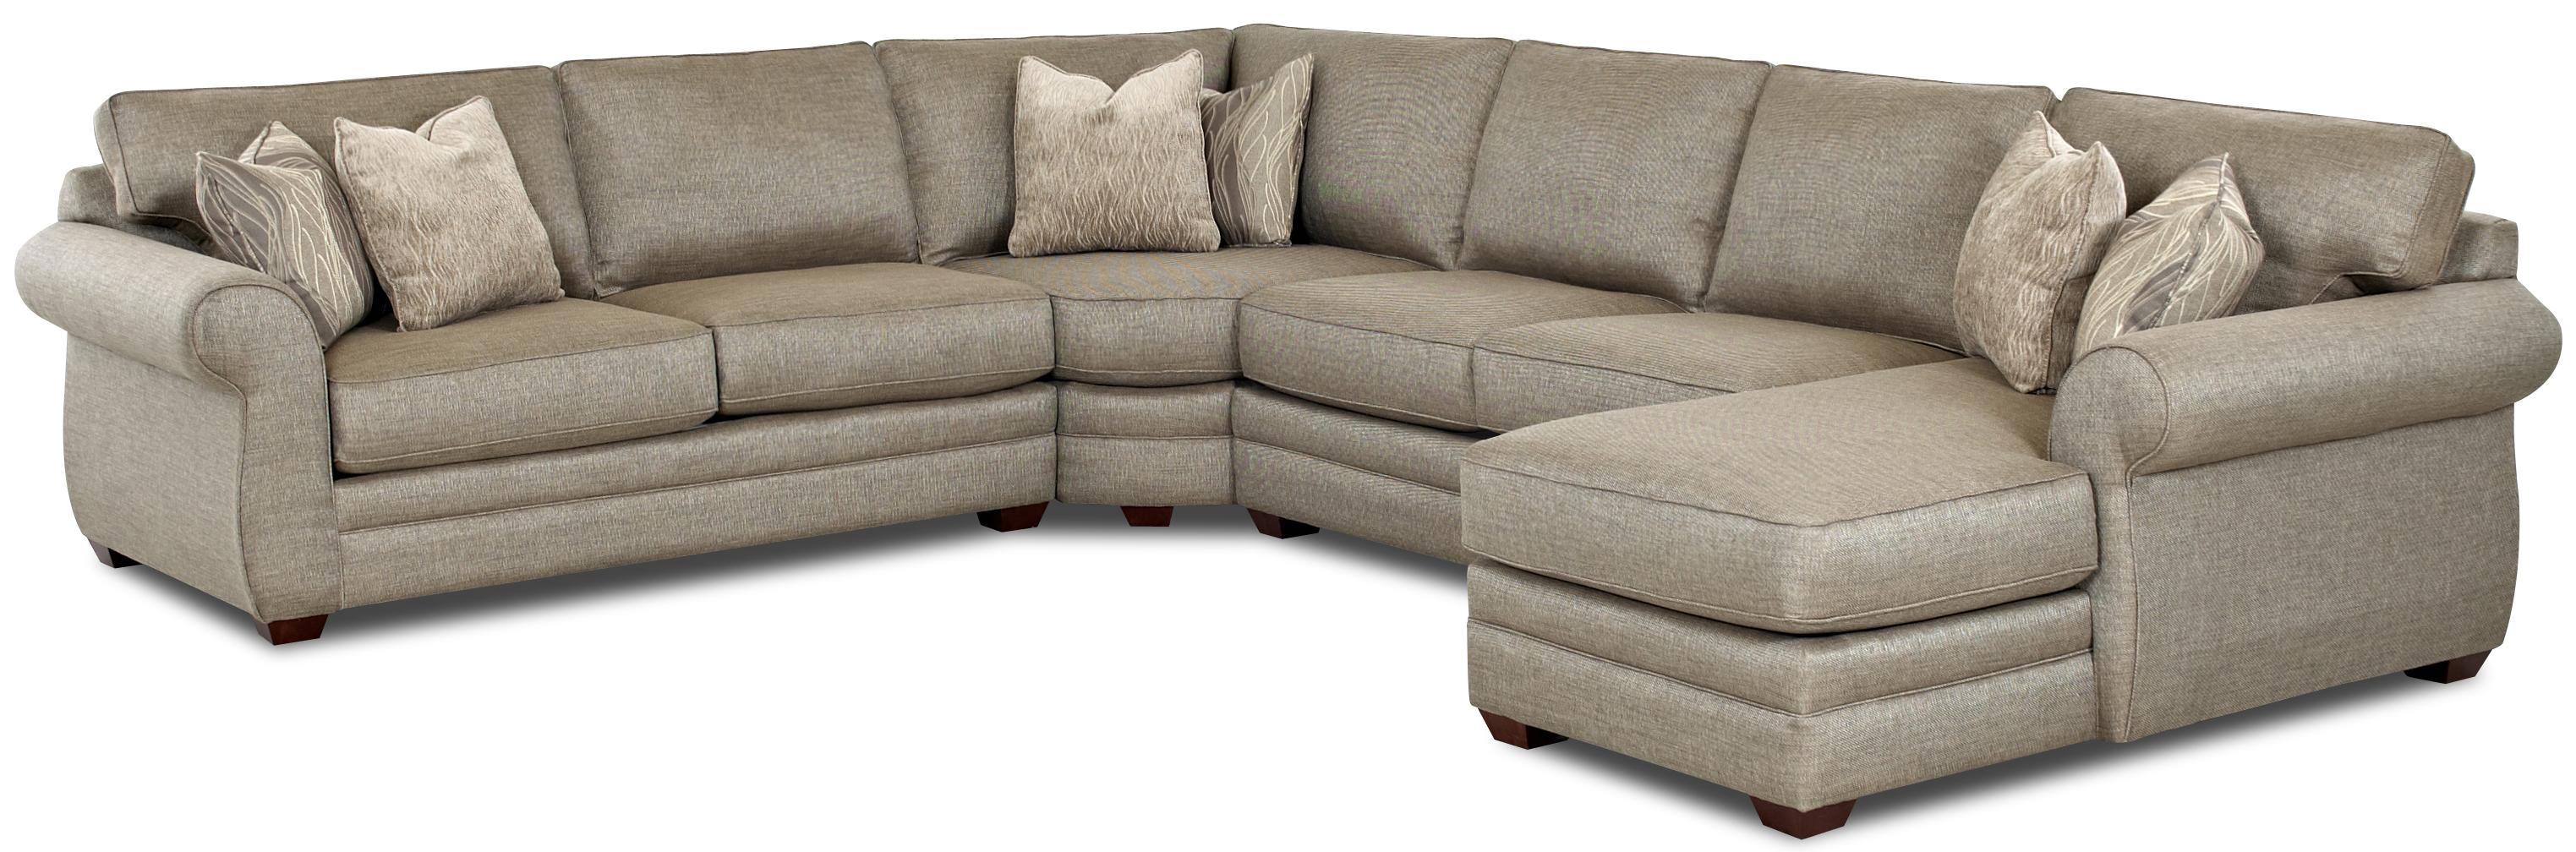 Clanton Sectional Sofa with Full Sleeper by Klaussner at Northeast Factory Direct